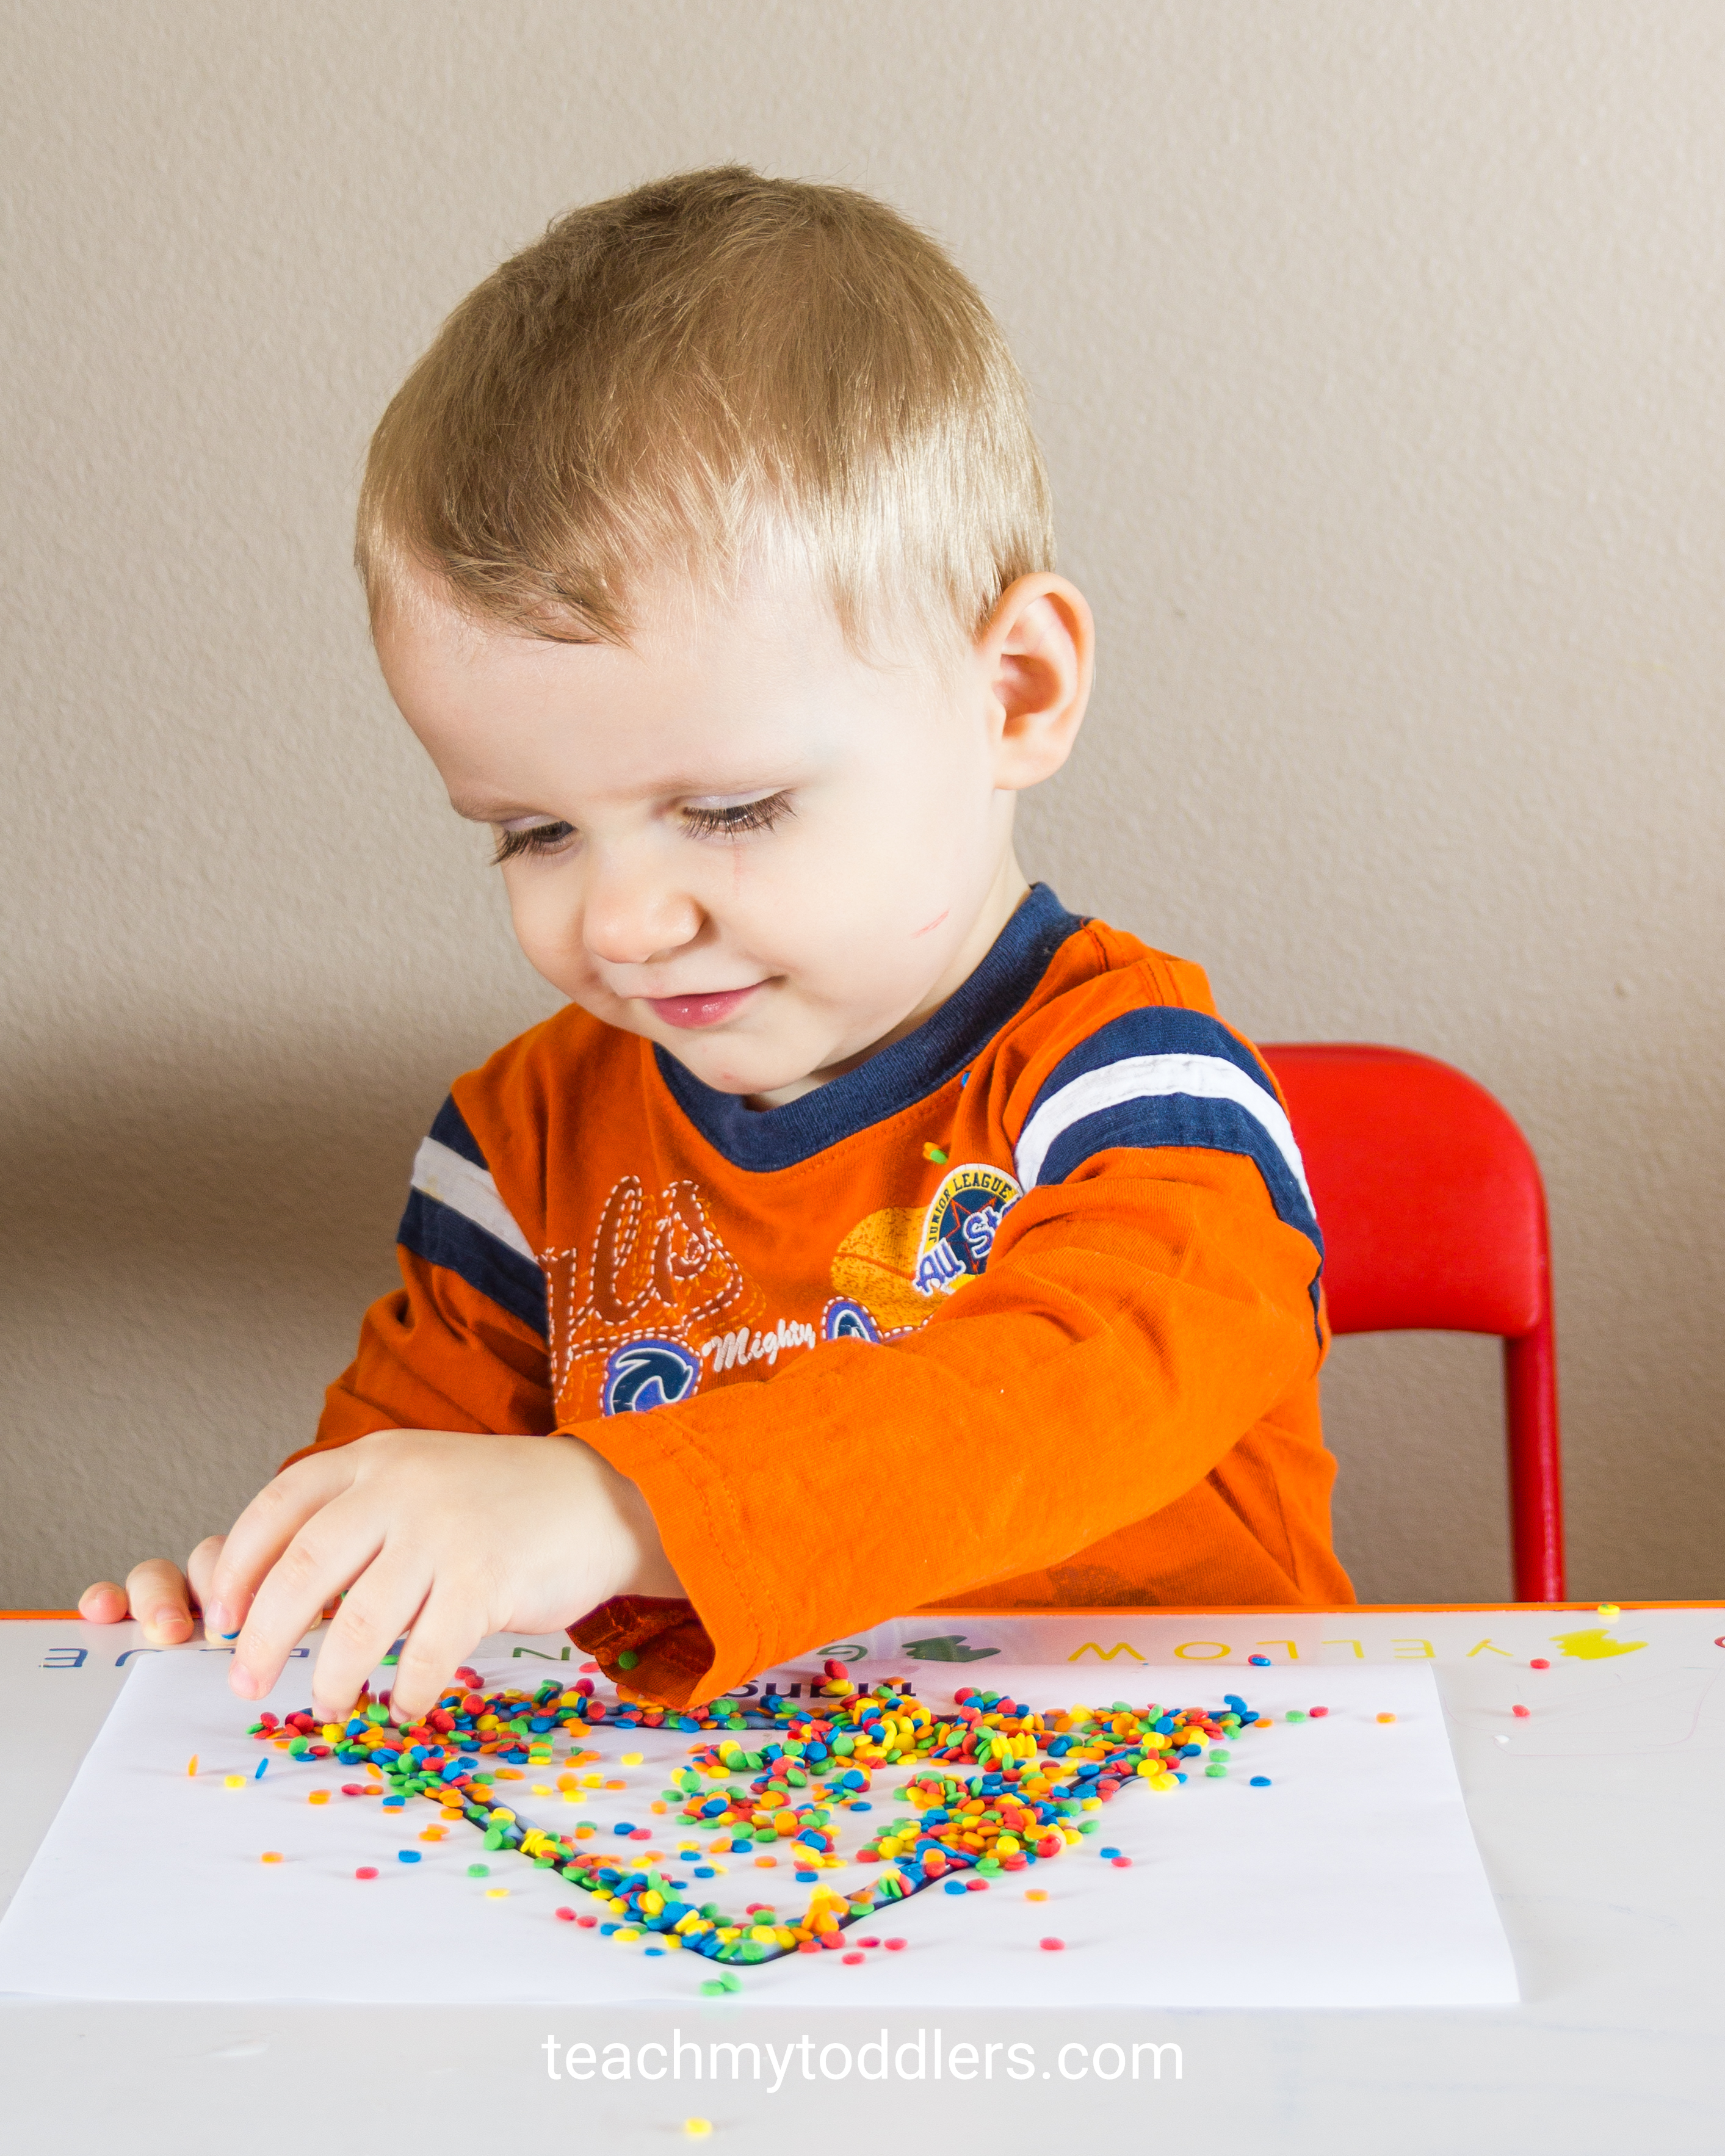 Discover how to use this decorating shapes activity to teach your toddlers shapes